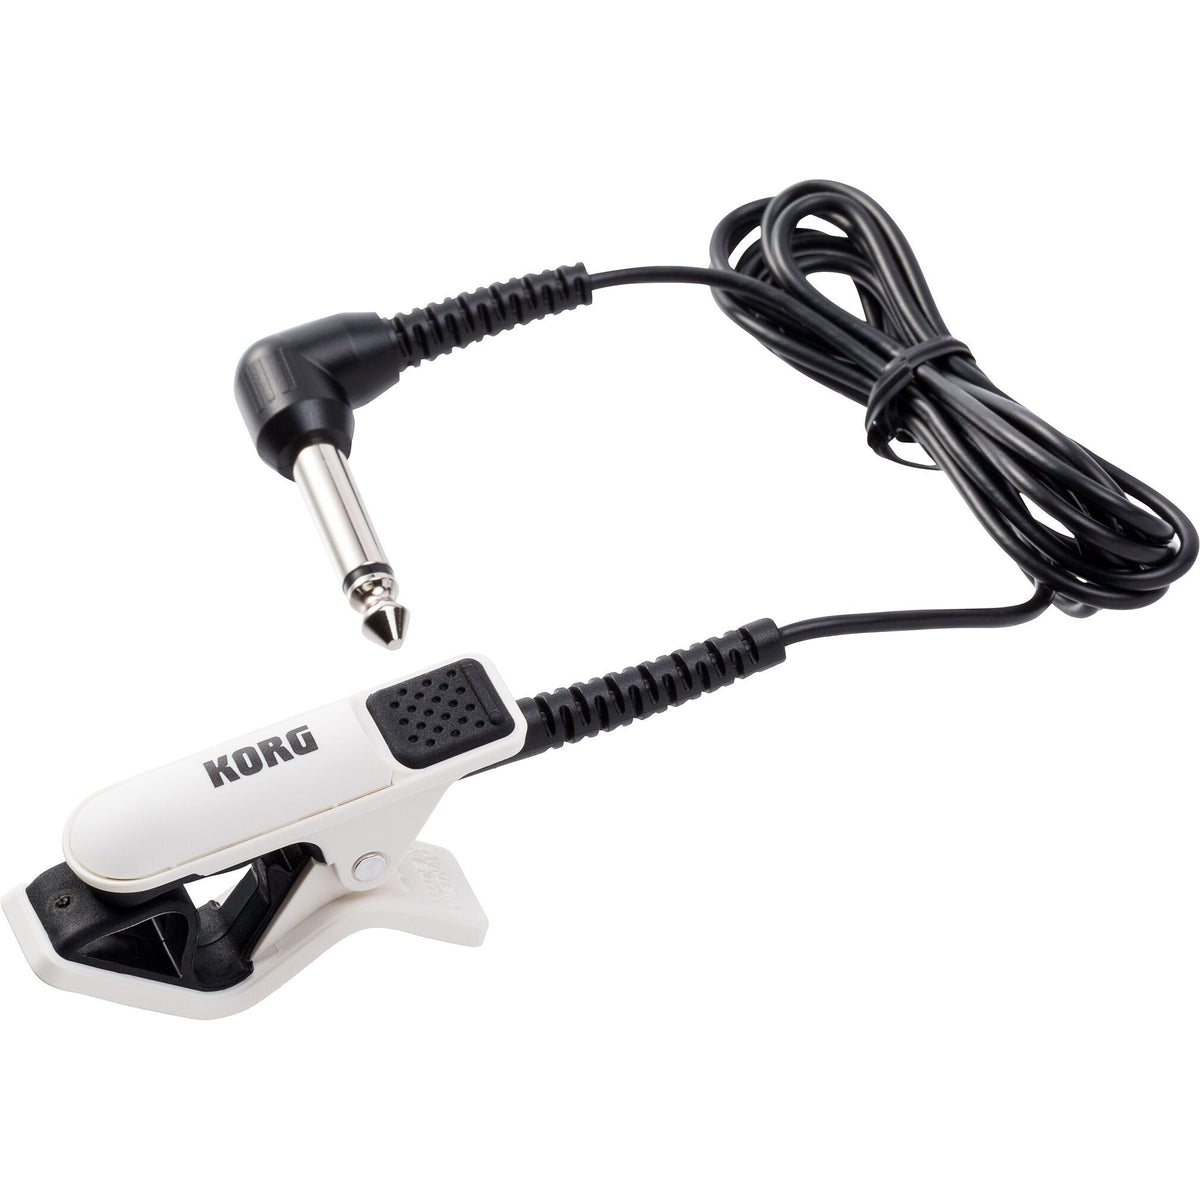 Korg CM-300 Contact Microphone, White/Black